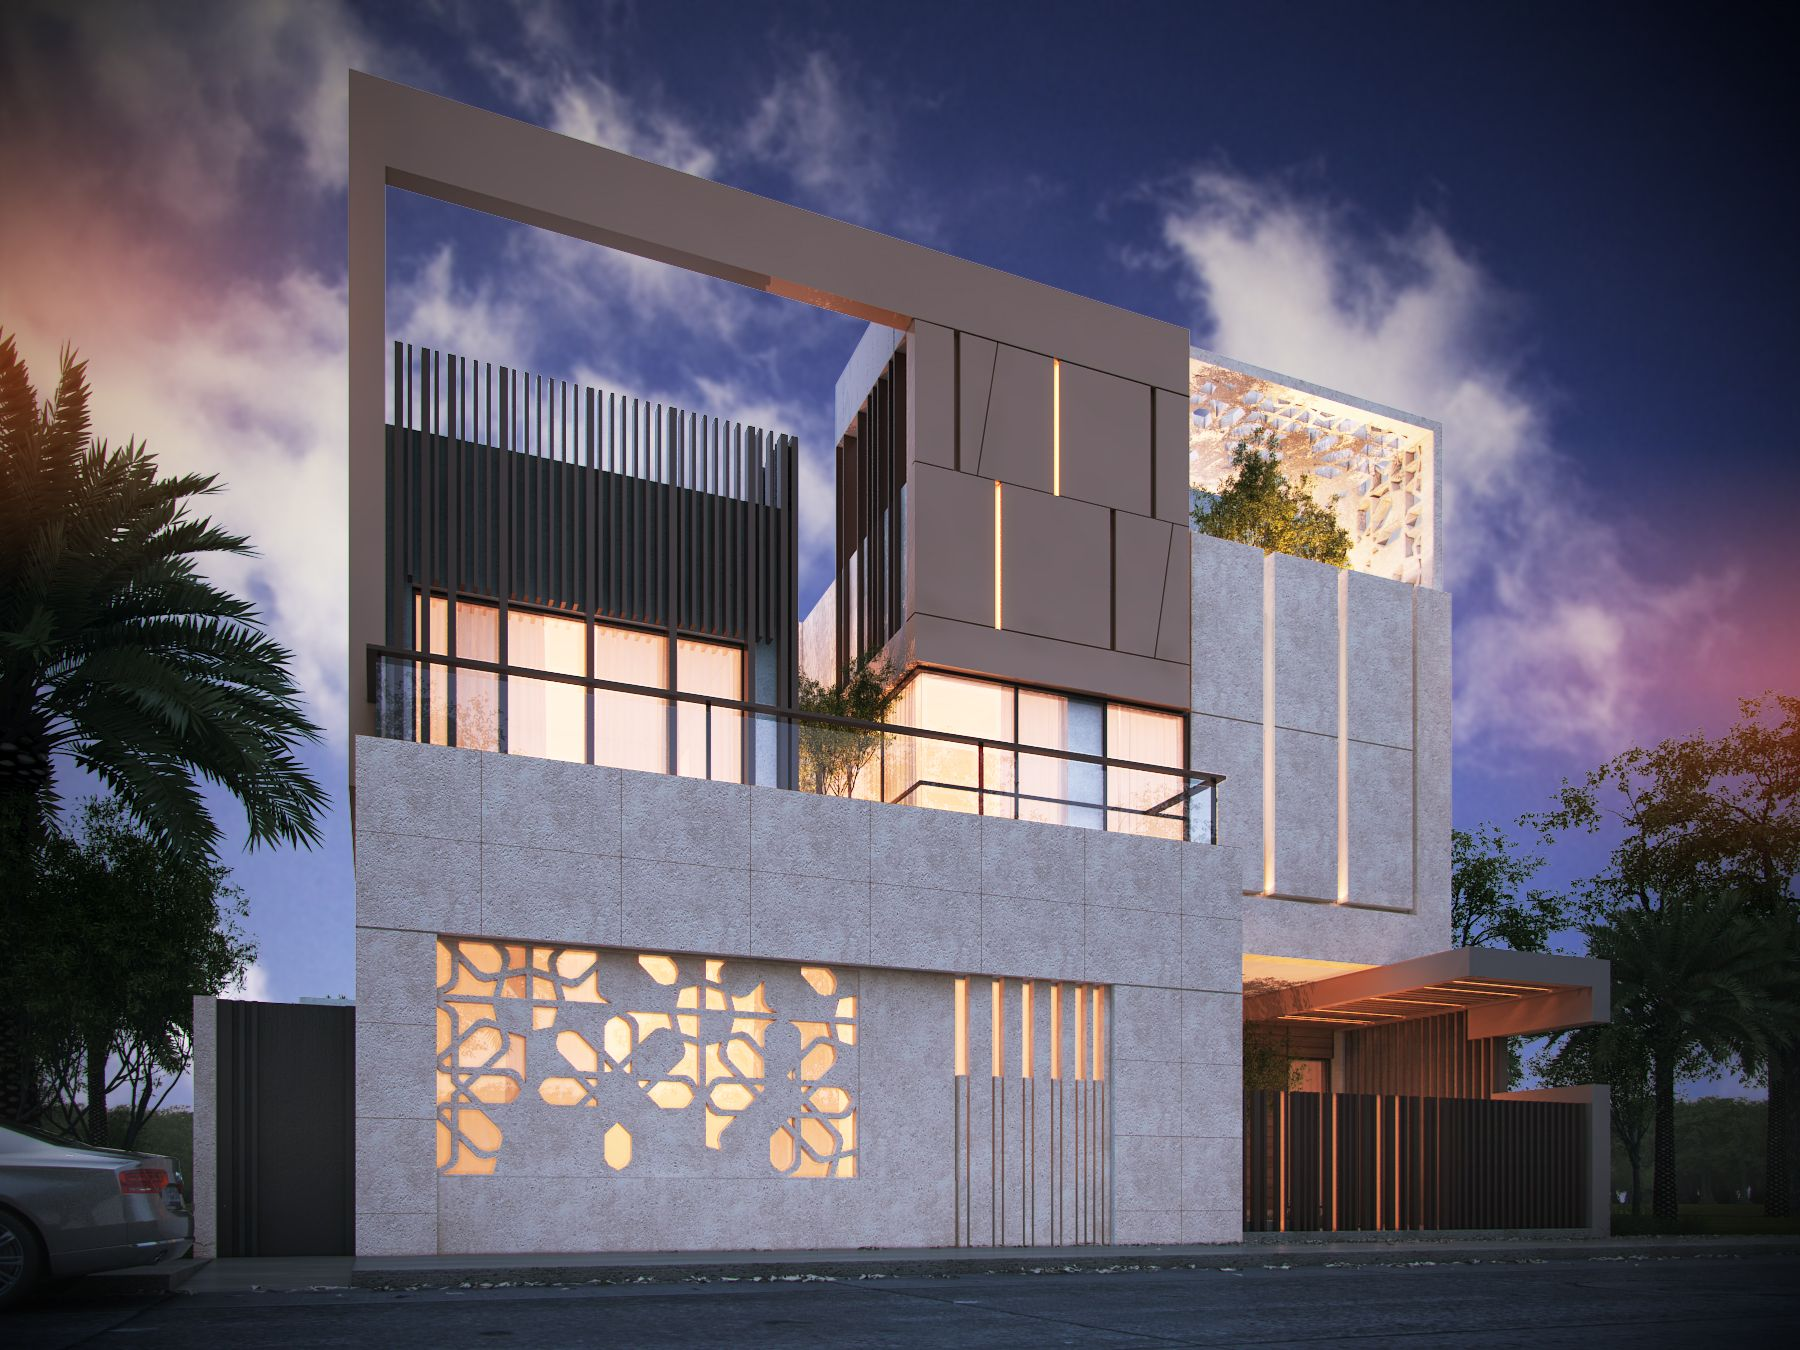 pleasing islamic design house usa. Call Us for Any Query 600 m private villa kuwait sarah sadeq architects